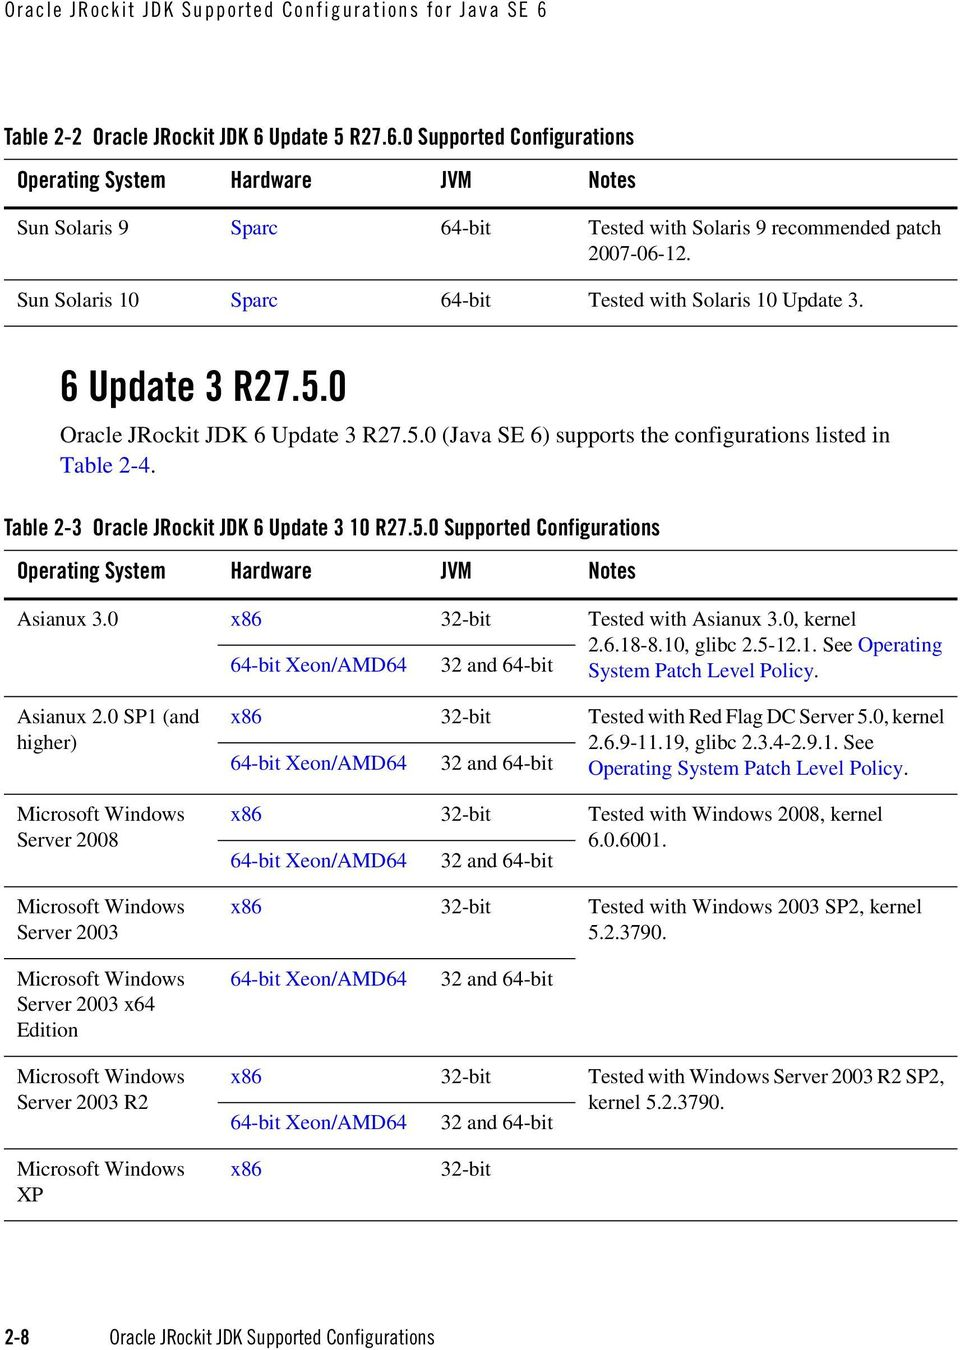 Table 2-3 Oracle JRockit JDK 6 Update 3 10 R27.5.0 Supported Configurations Asianux 3.0 x86 Tested with Asianux 3.0, kernel 2.6.18-8.10, glibc 2.5-12.1. See Operating System Patch Level Policy.